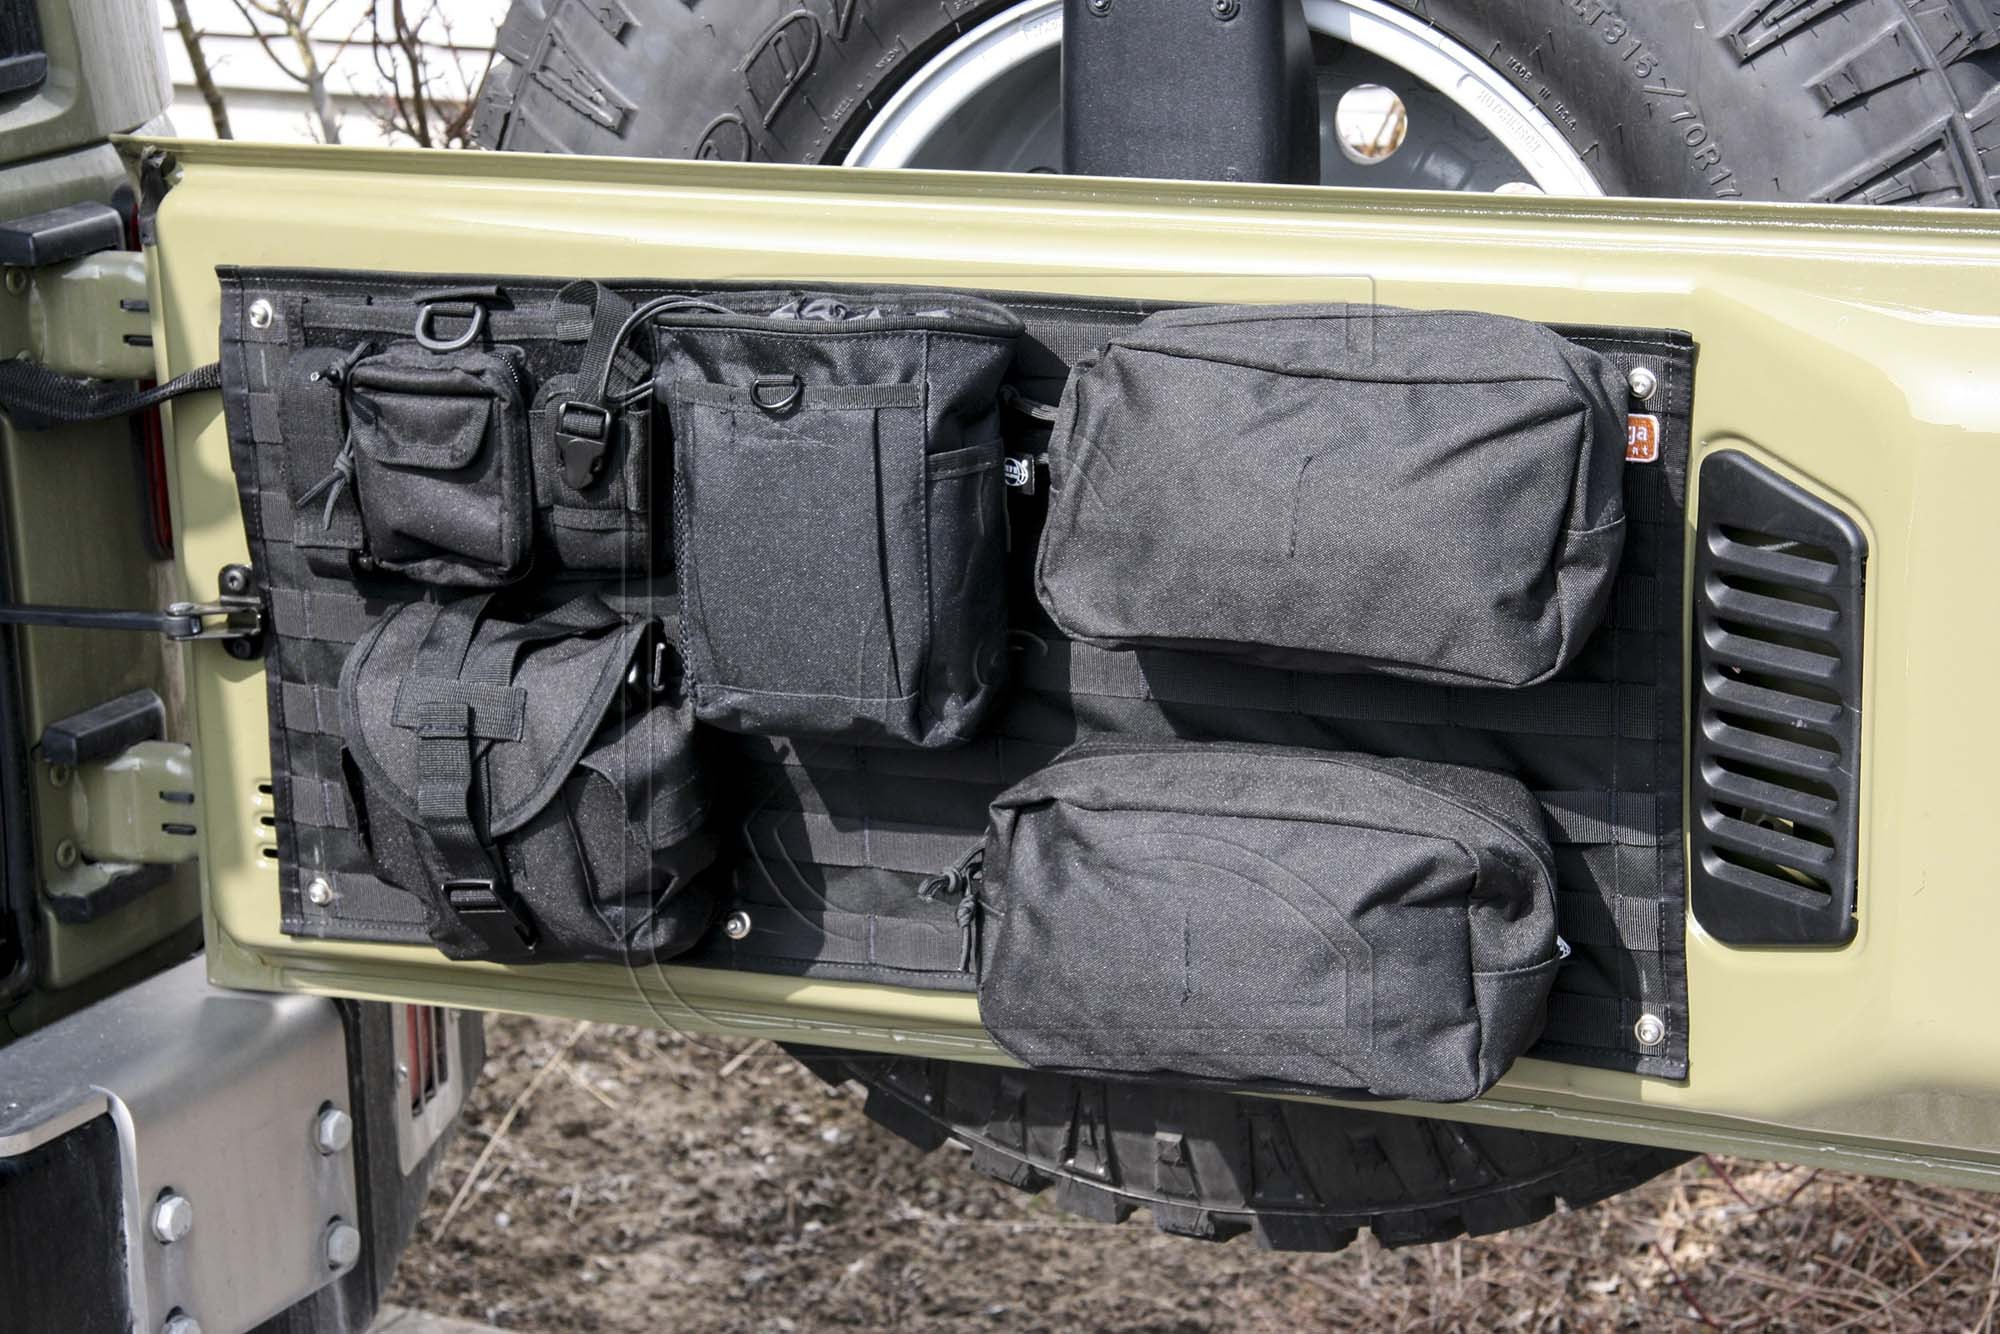 4x4 Outdoor Tuning Tailgate Organizer For Jeep Wrangler Jk